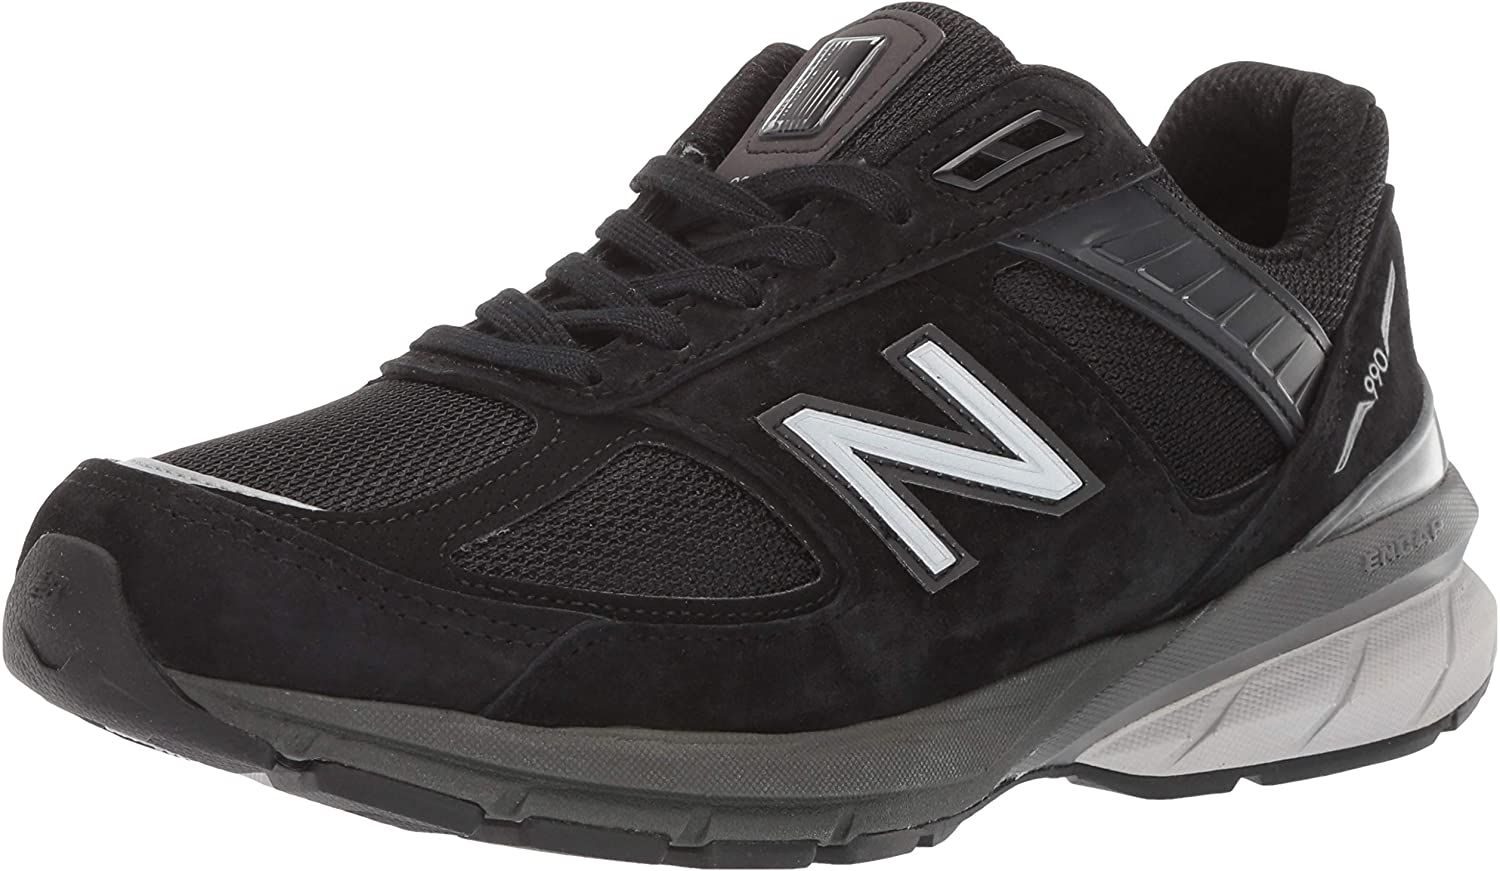 New Balance Women's Made in Us 990 V5 Sneaker